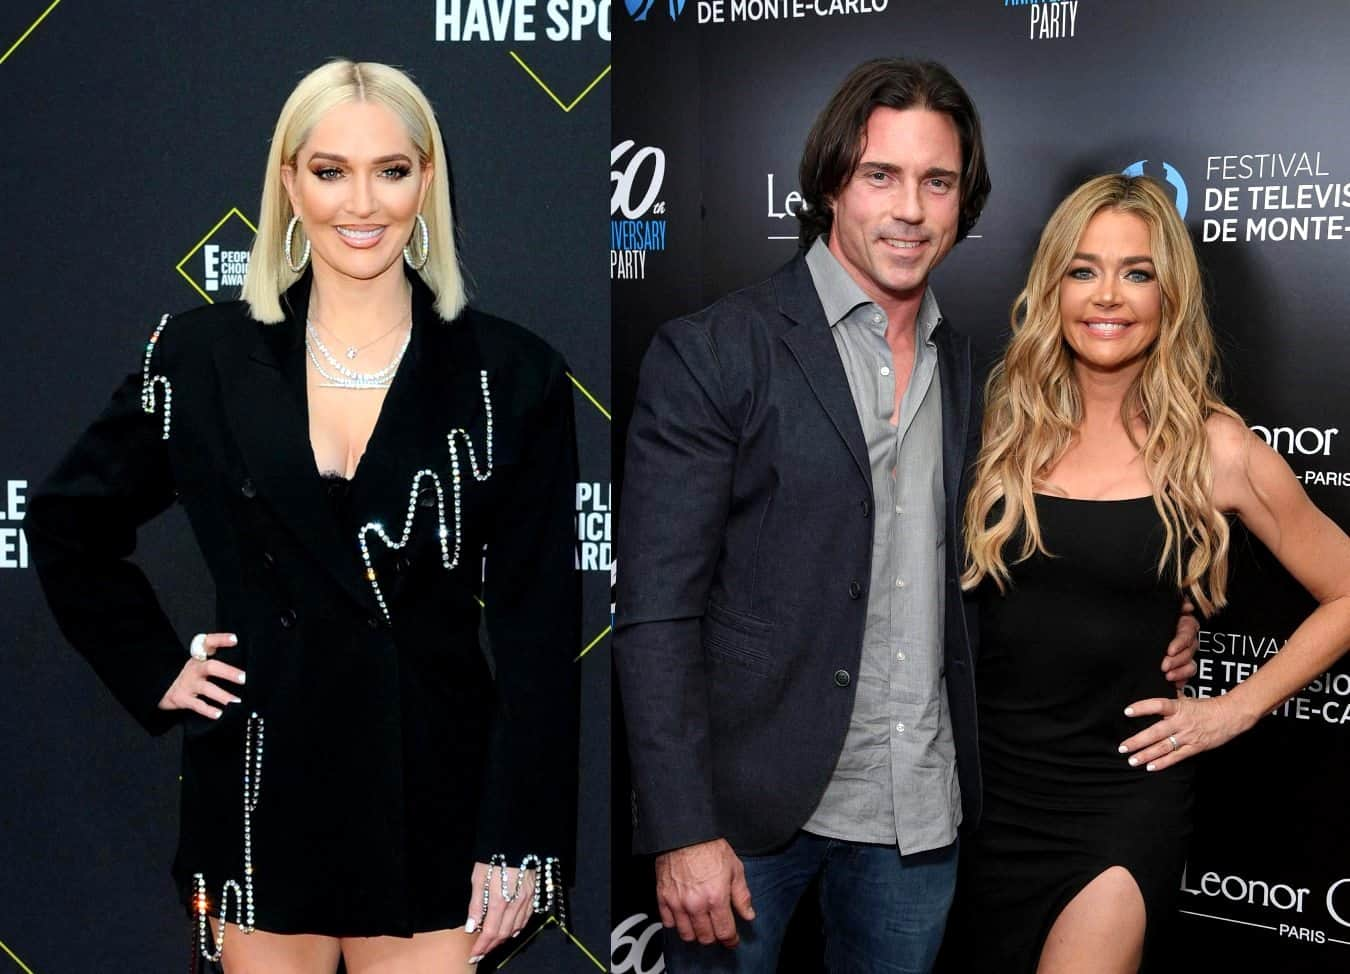 RHOBH Star Erika Jayne Reveals the Real Reason For Her Feud with Denise Richards' Husband Aaron Phypers, Plus the Two Things That Surprised Her Most This Season